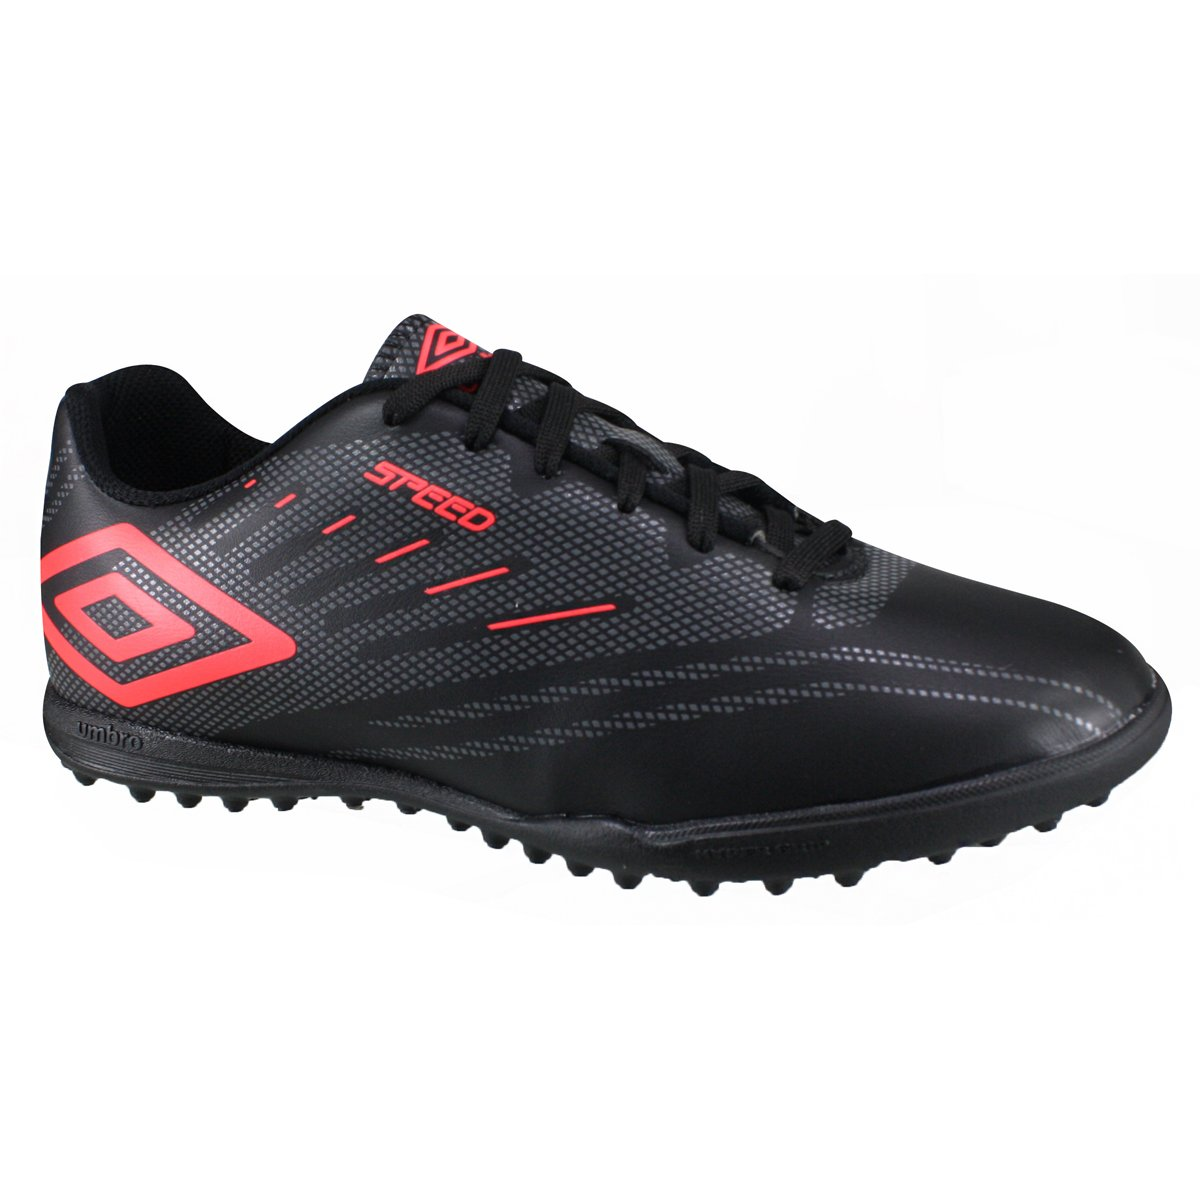 d0081213d3 Amplie a imagem. Chuteira Society Umbro Speed IV  Chuteira Society Umbro  Speed IV  Chuteira Society Umbro Speed ...